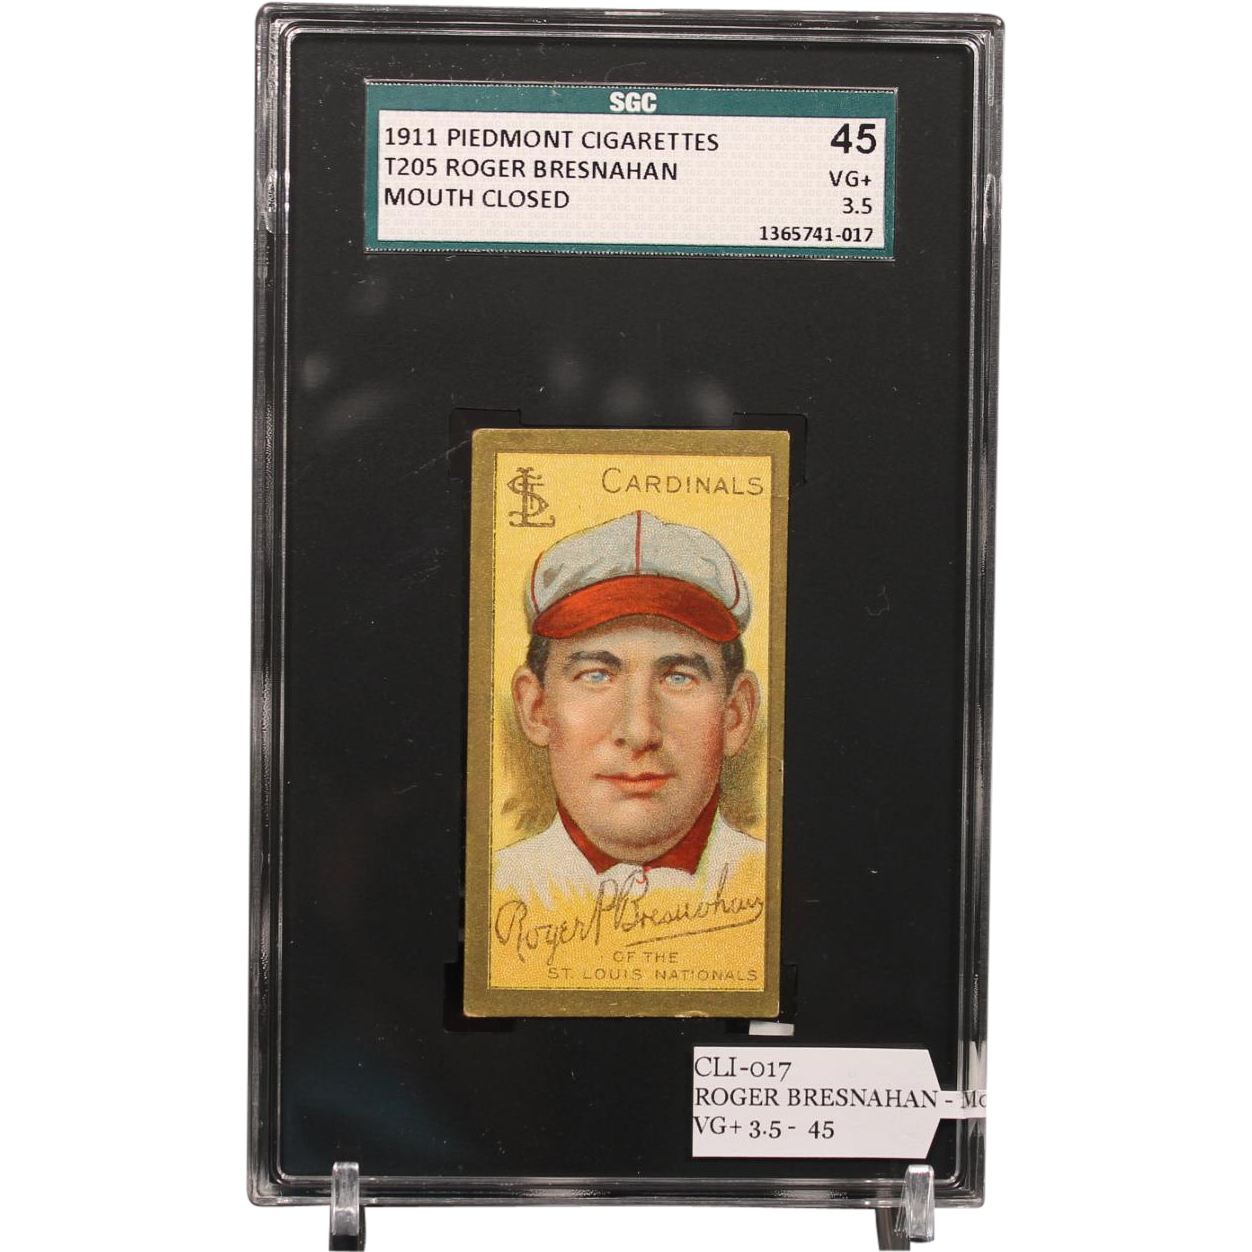 T205 Roger Bresnahan-Hall of Famer-Mouth Closed SGC grade 45 VG+ 3.5